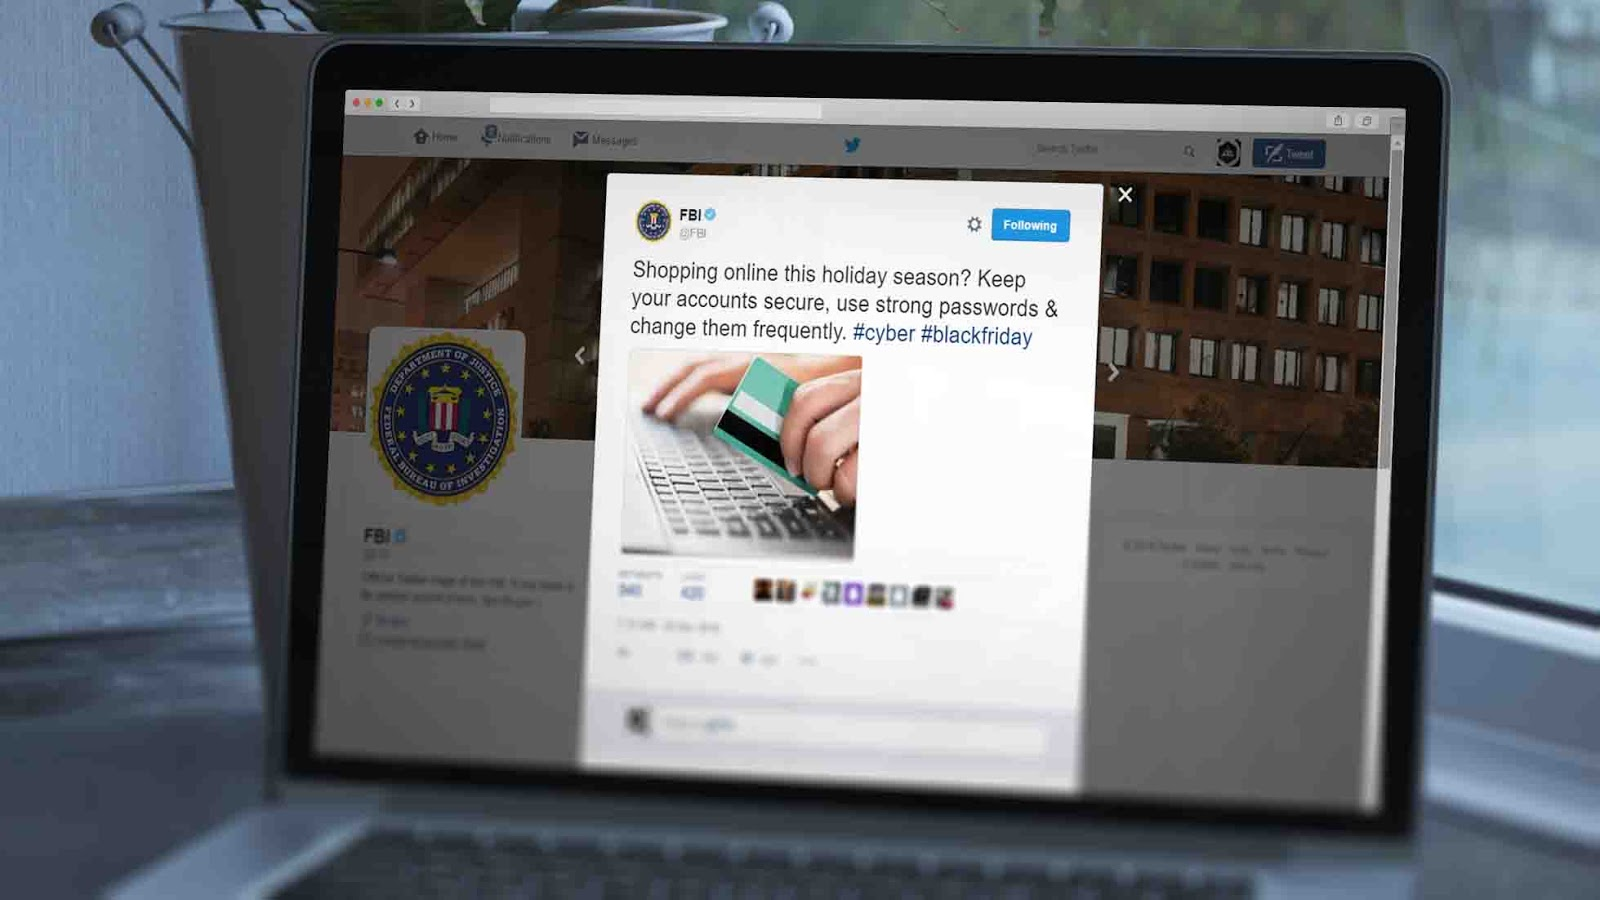 fbi-tell-users-to-change-passwords-expert-say-this-is-bad-advice